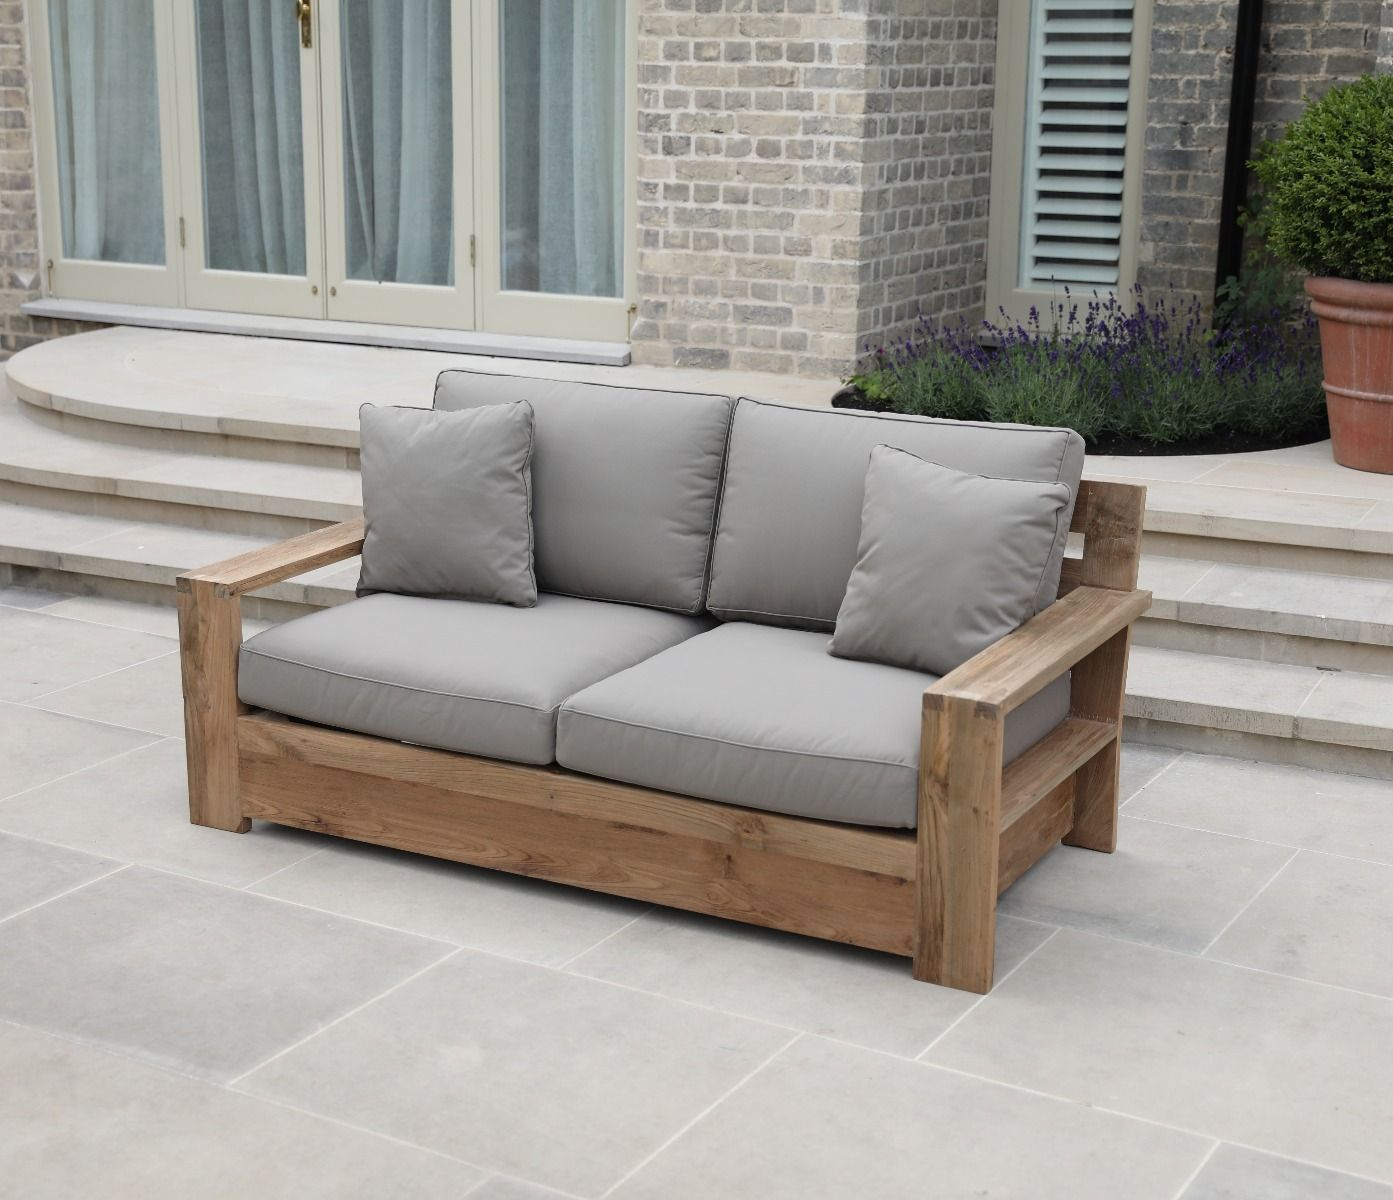 Garden Sofa Two Seater Tuscan Reclaimed Two Seater Sofa